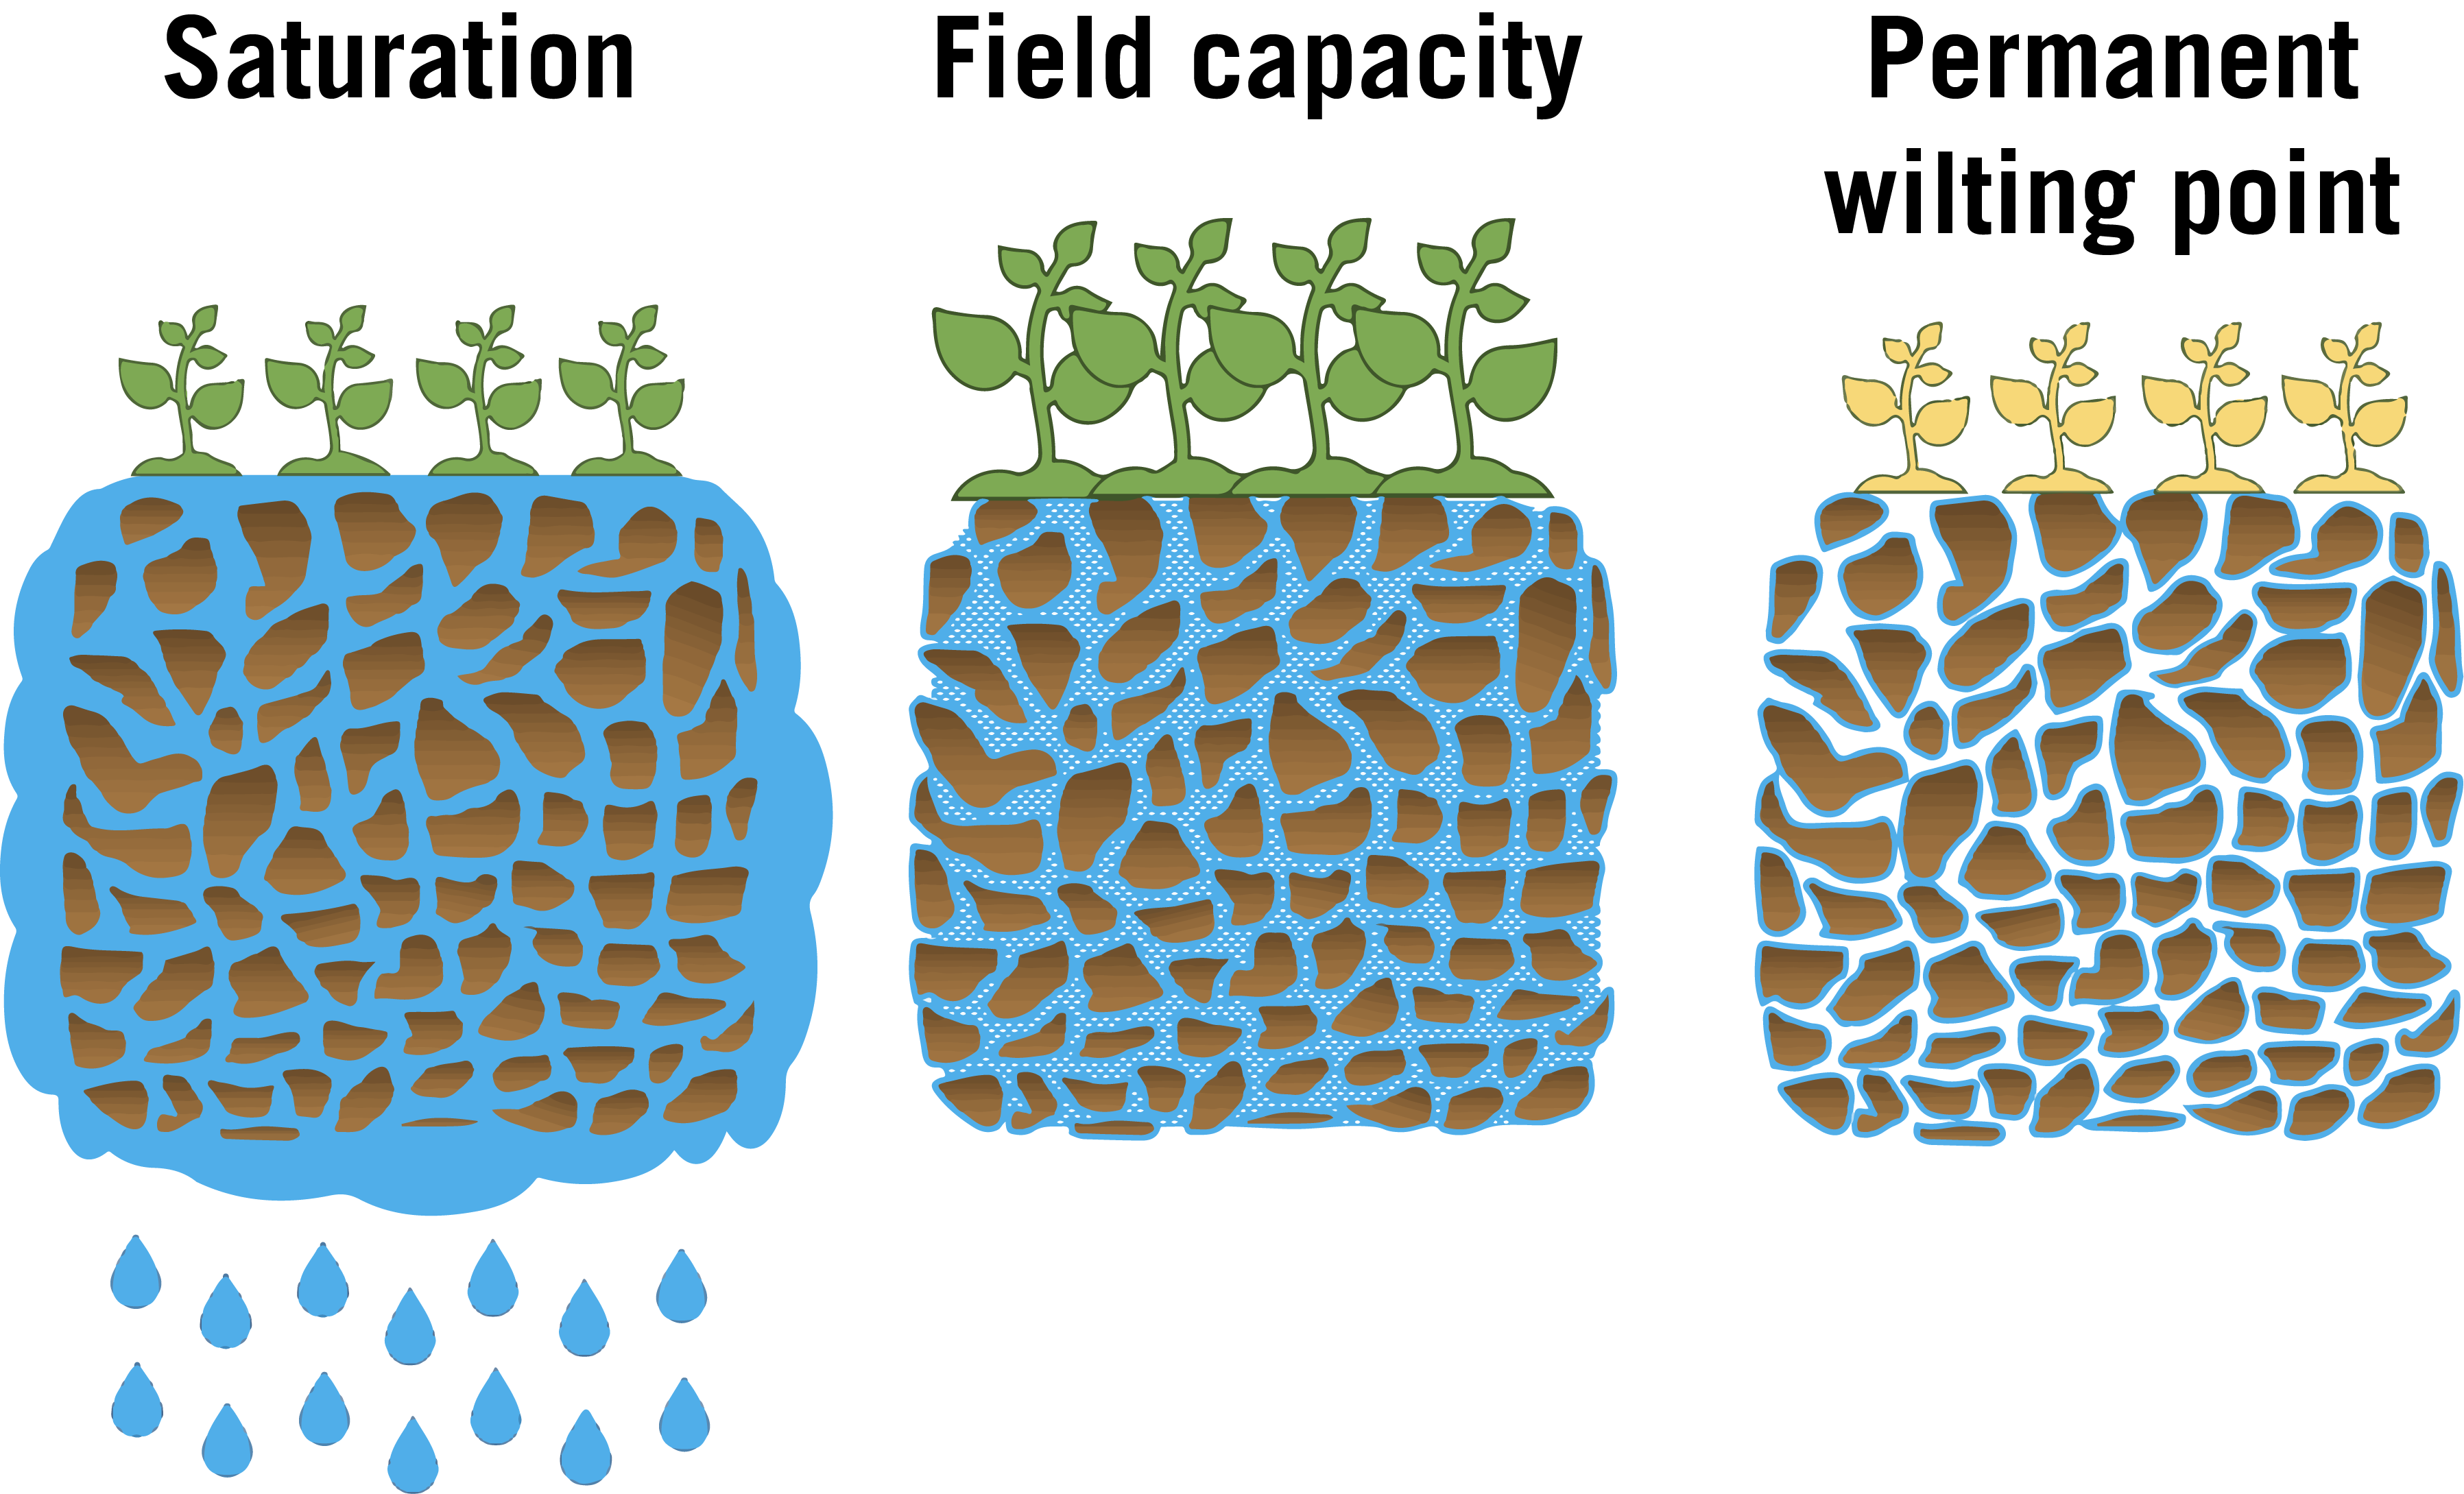 Illustration of soil saturation